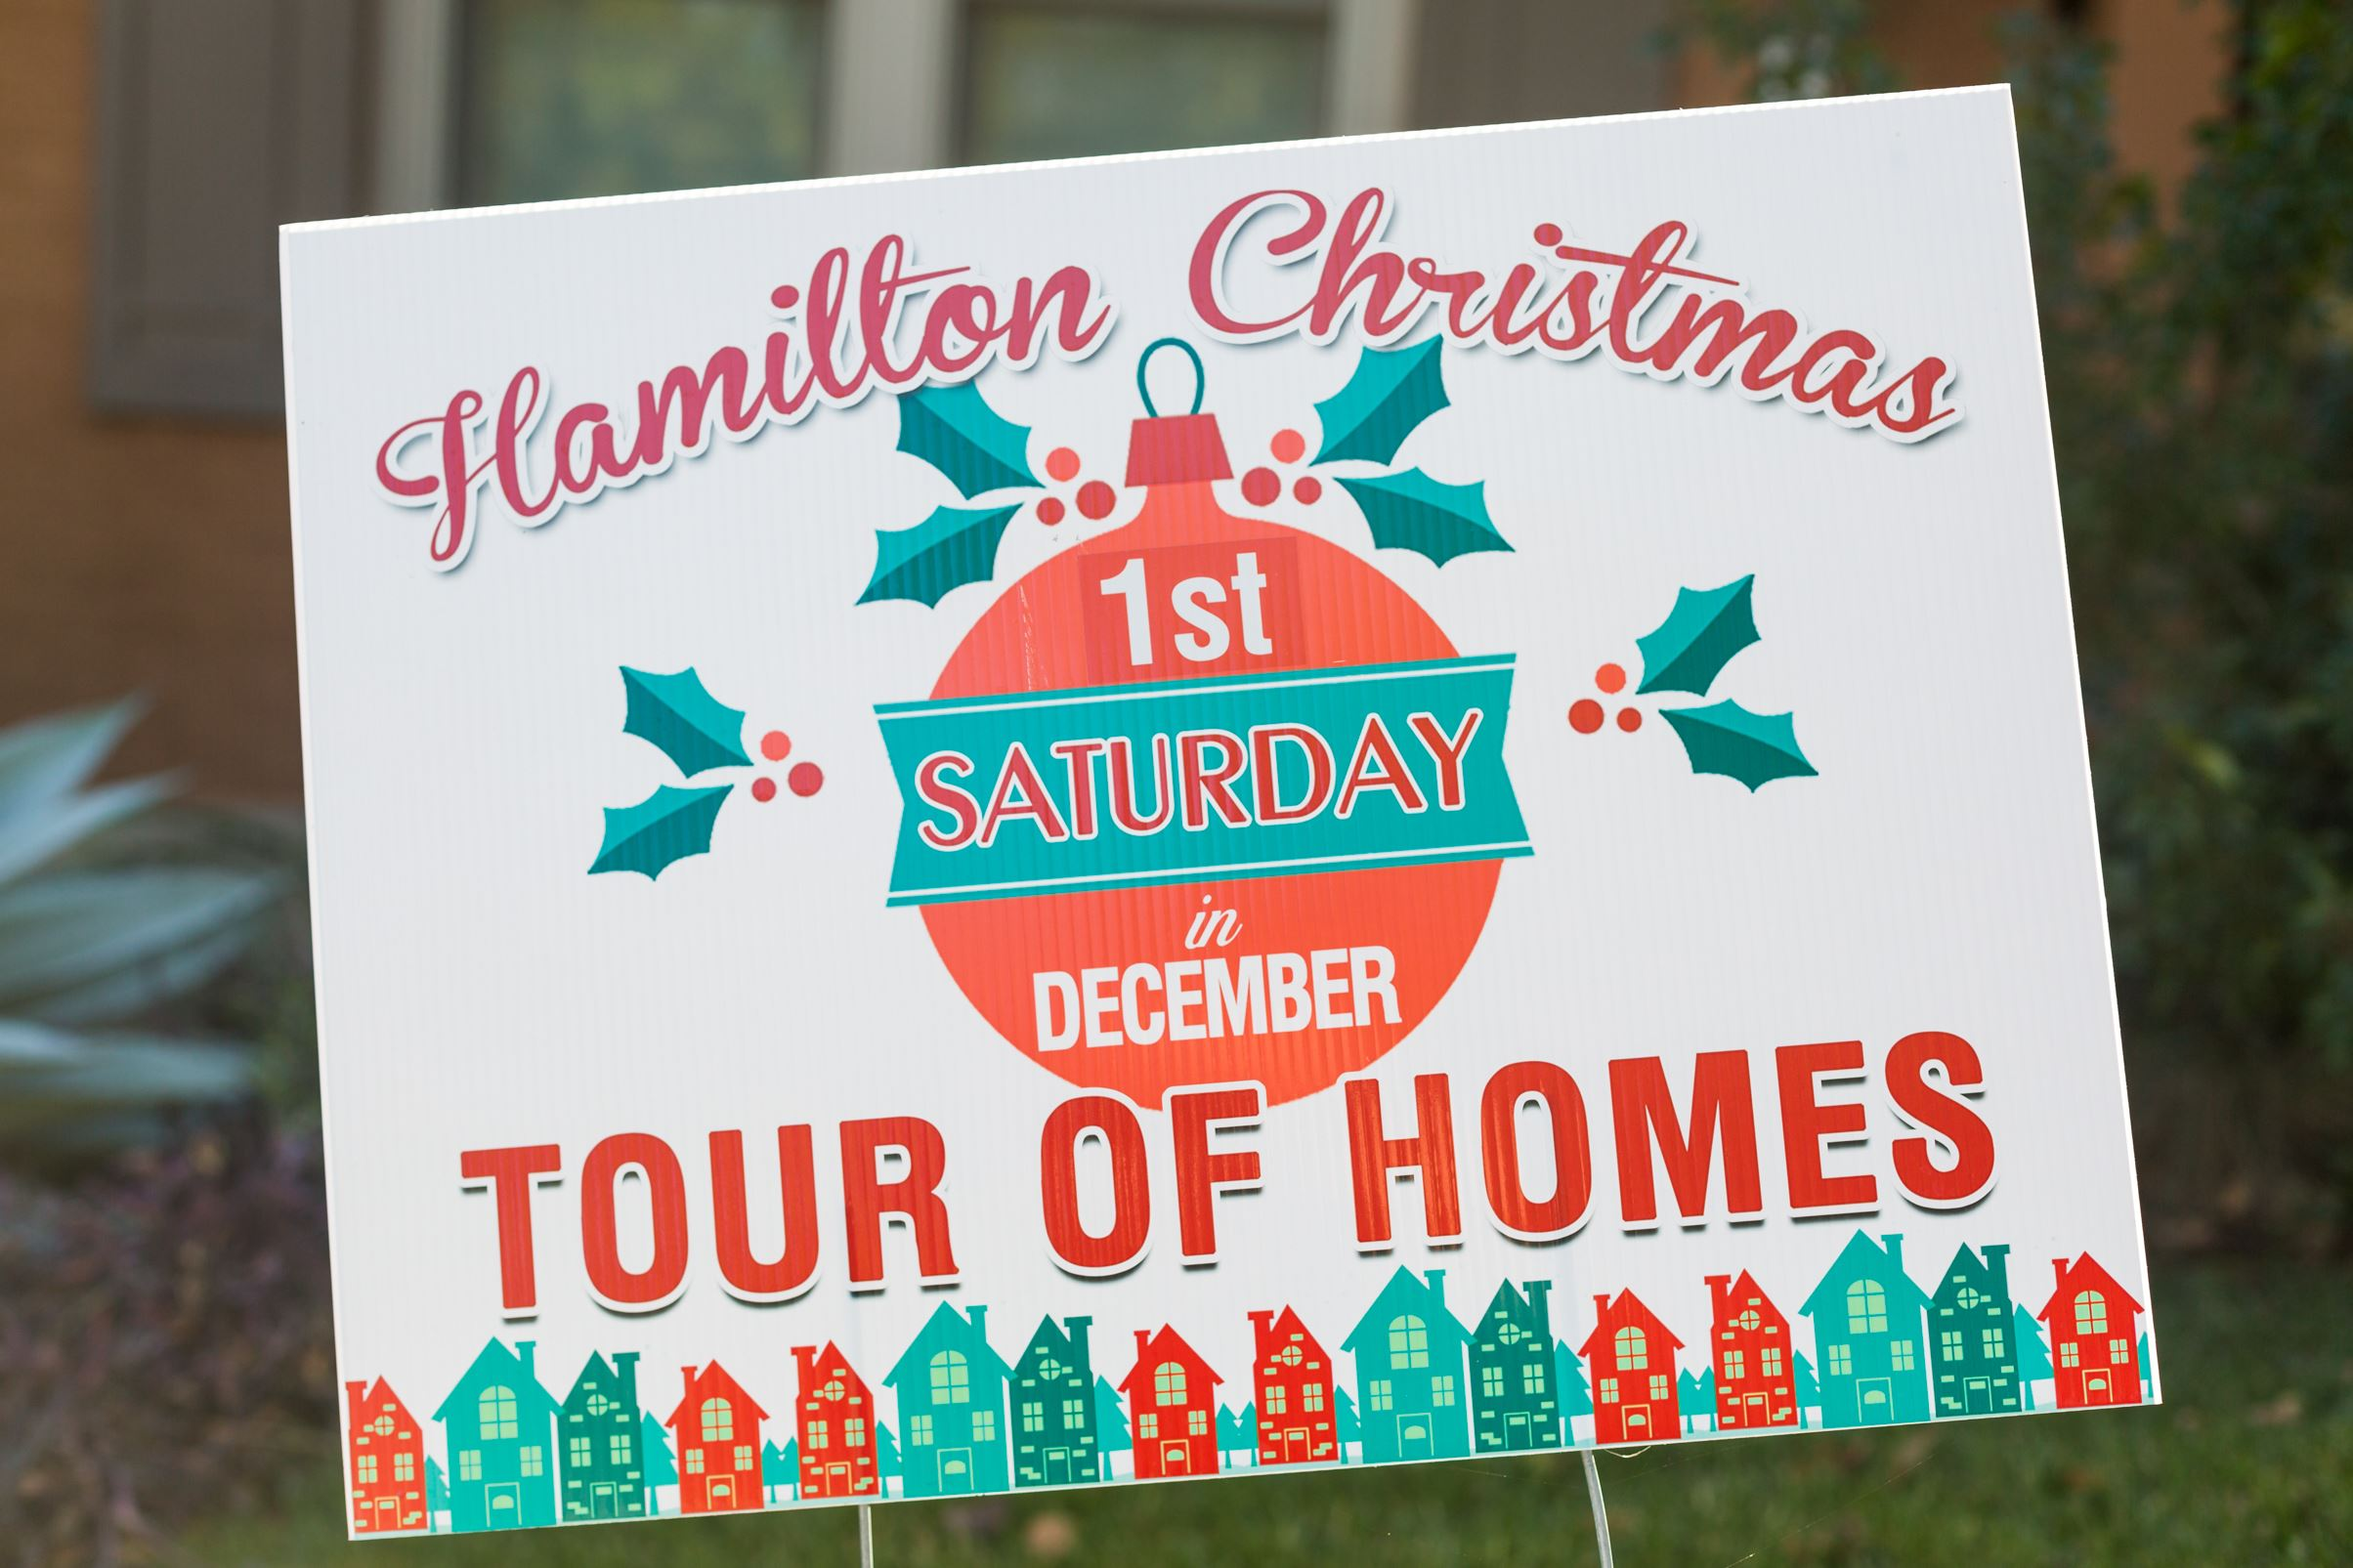 Tour of Homes sign